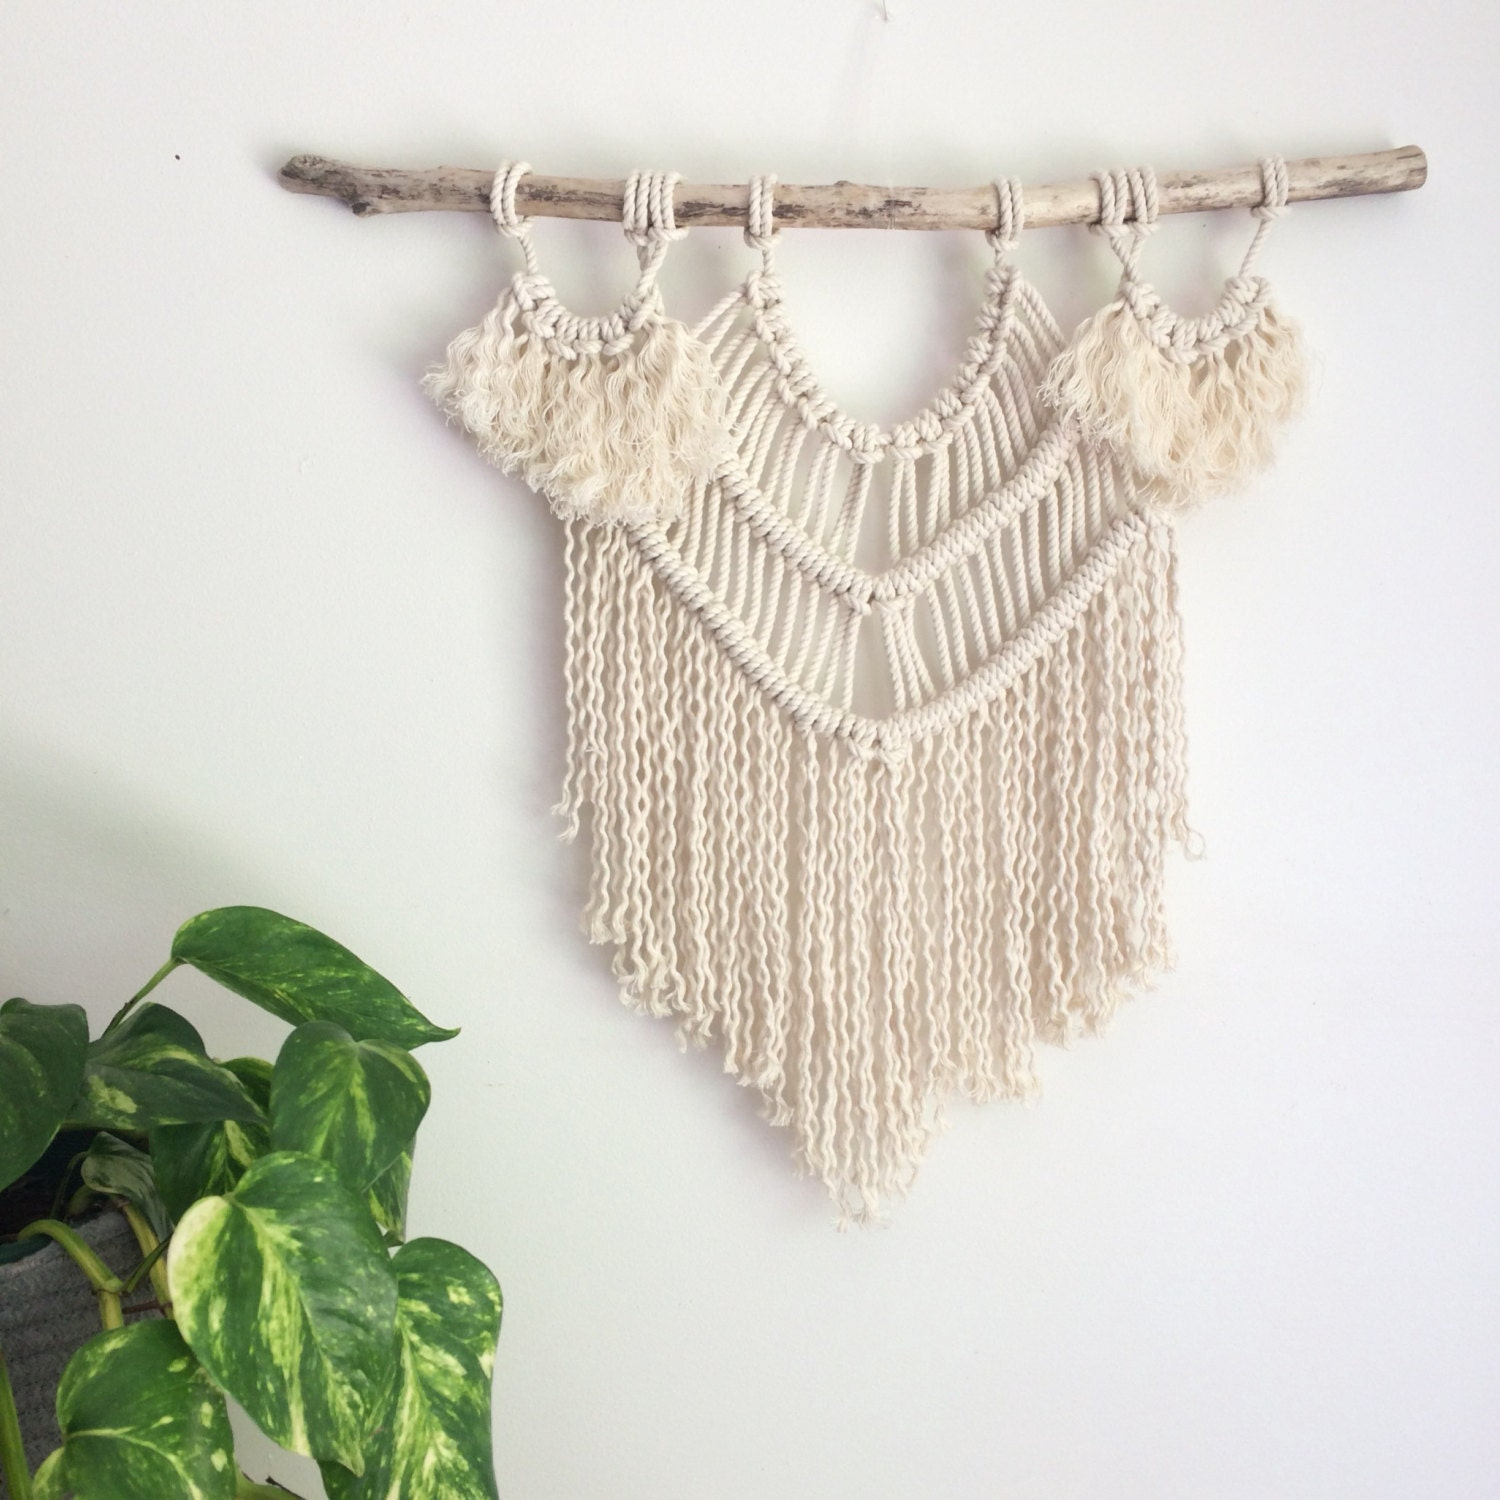 macrame wall hanging kit diy kit macrame wall hanging 6269